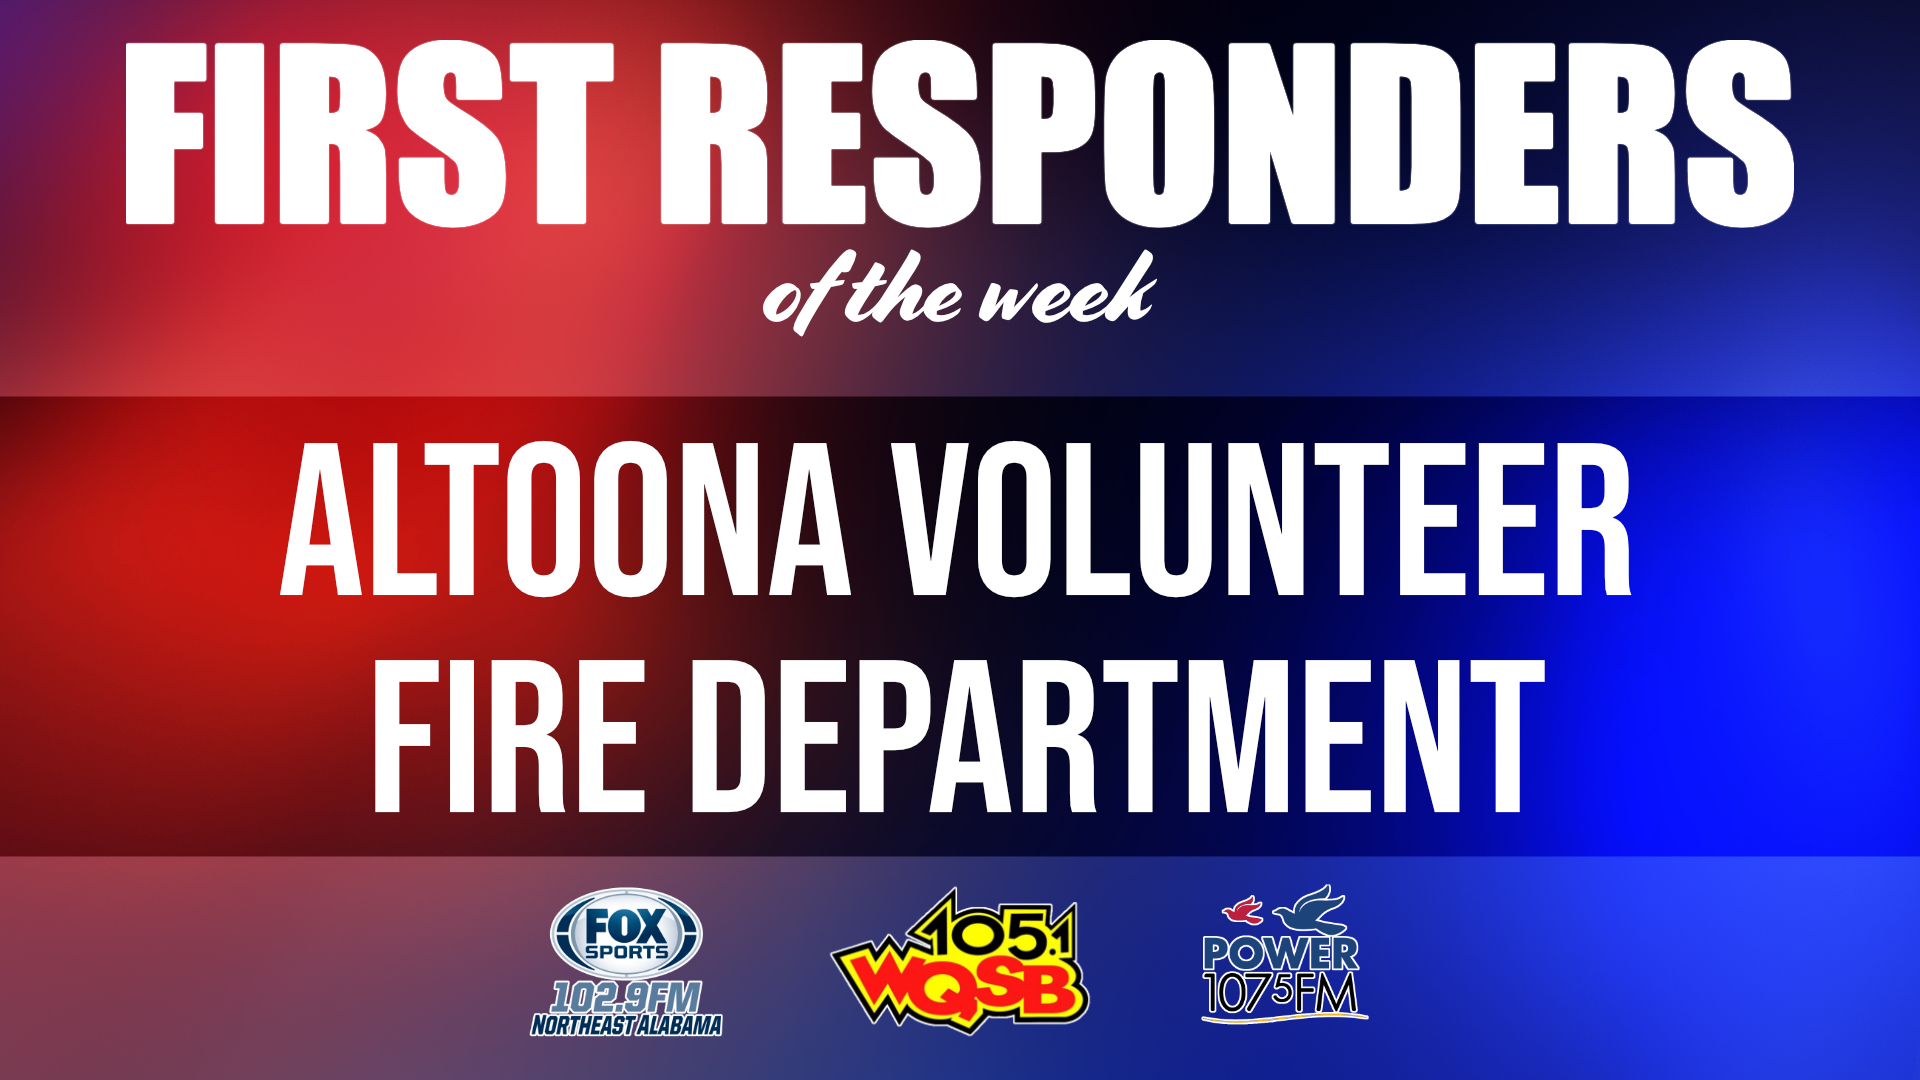 WQSB First Responders of the Week 2021 February 1, 2021